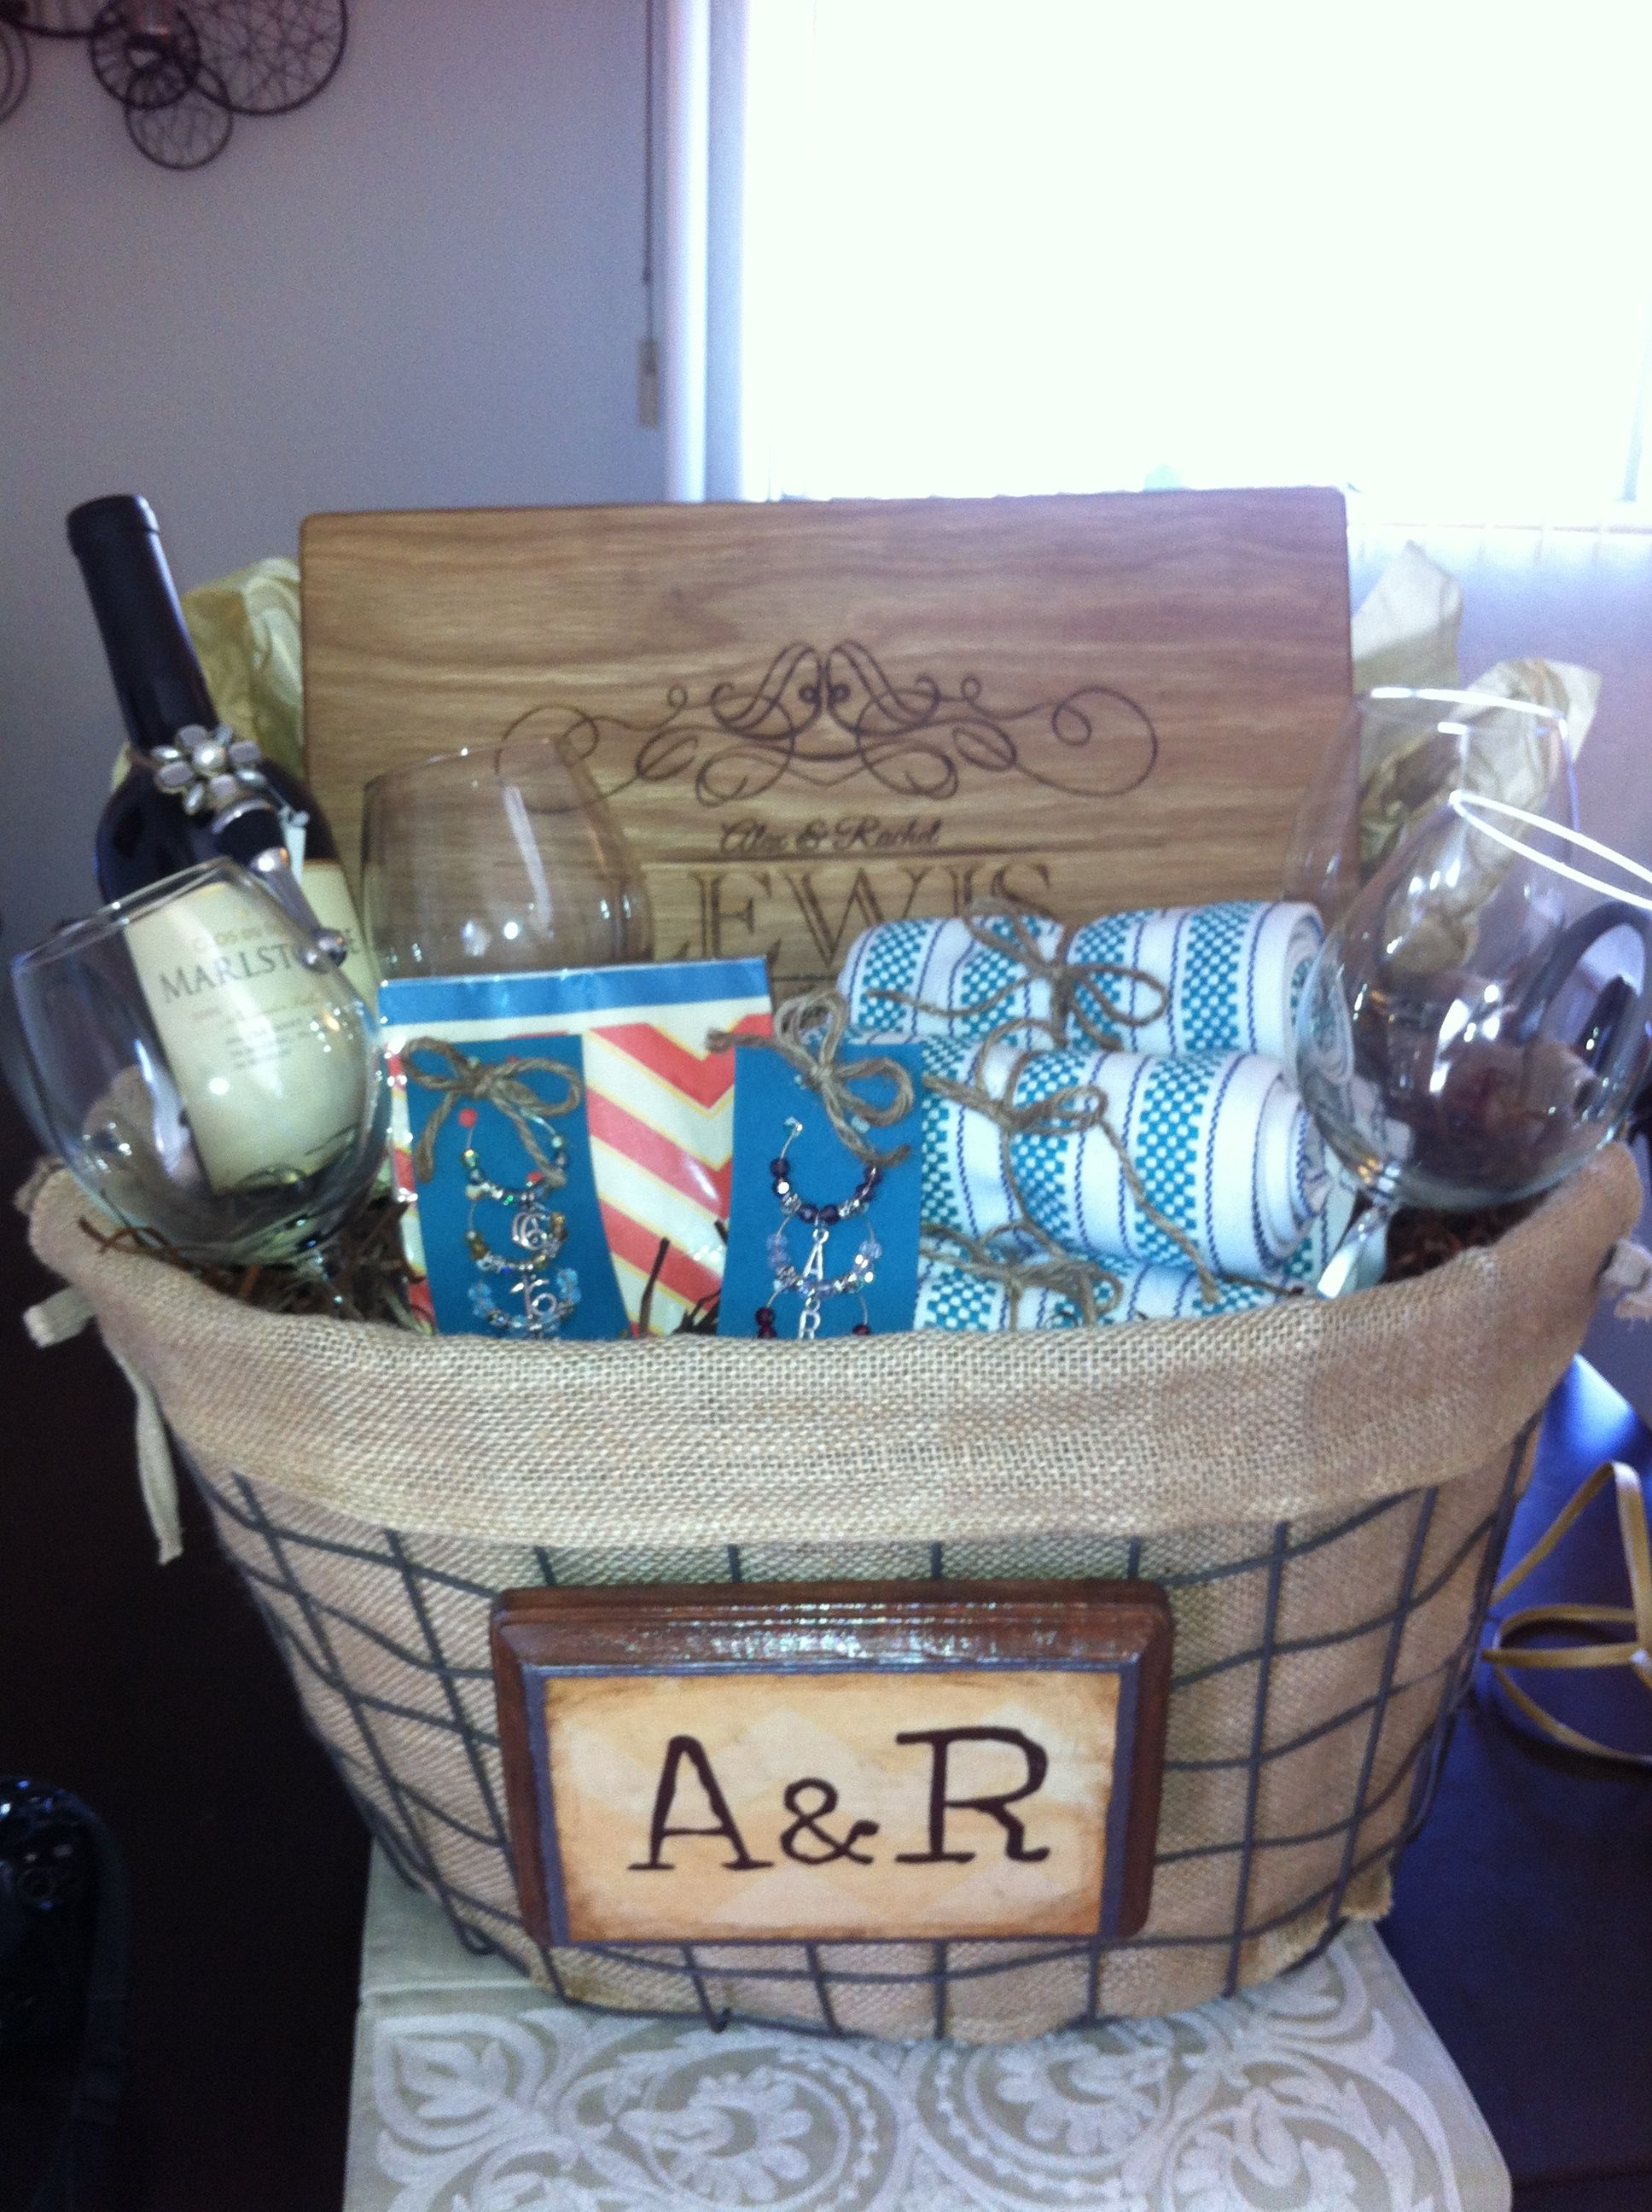 Bridal Shower Wine Gift Basket Ideas : ... gift baskets wedding gift baskets bridal shower gifts bridal gifts